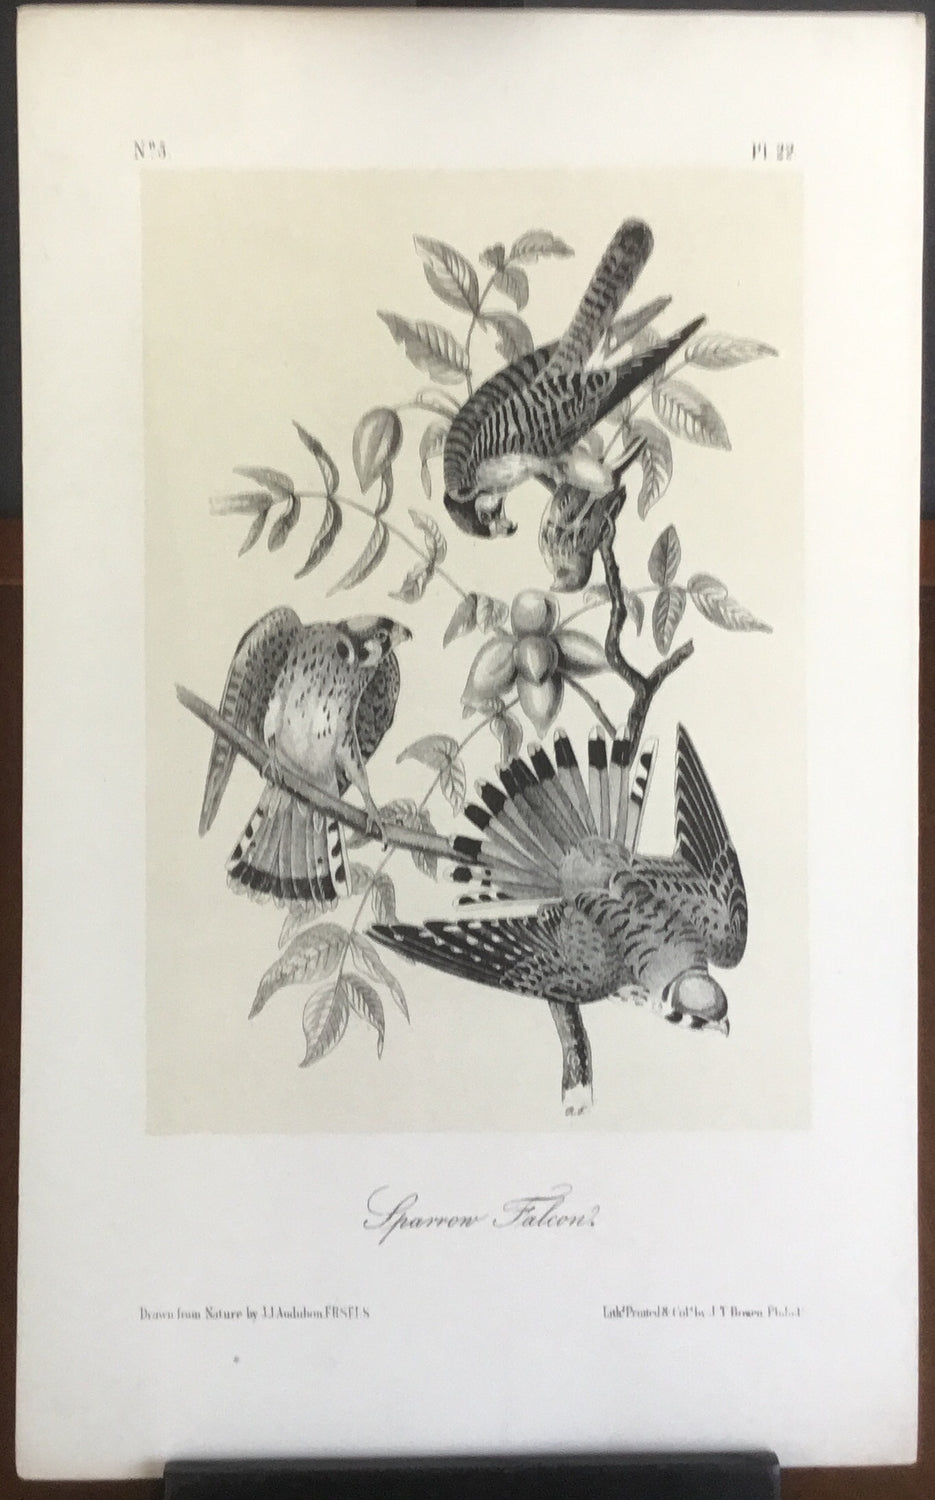 Audubon Octavo Sparrow Falcon, plate 22, uncolored test sheet. 7 x 11